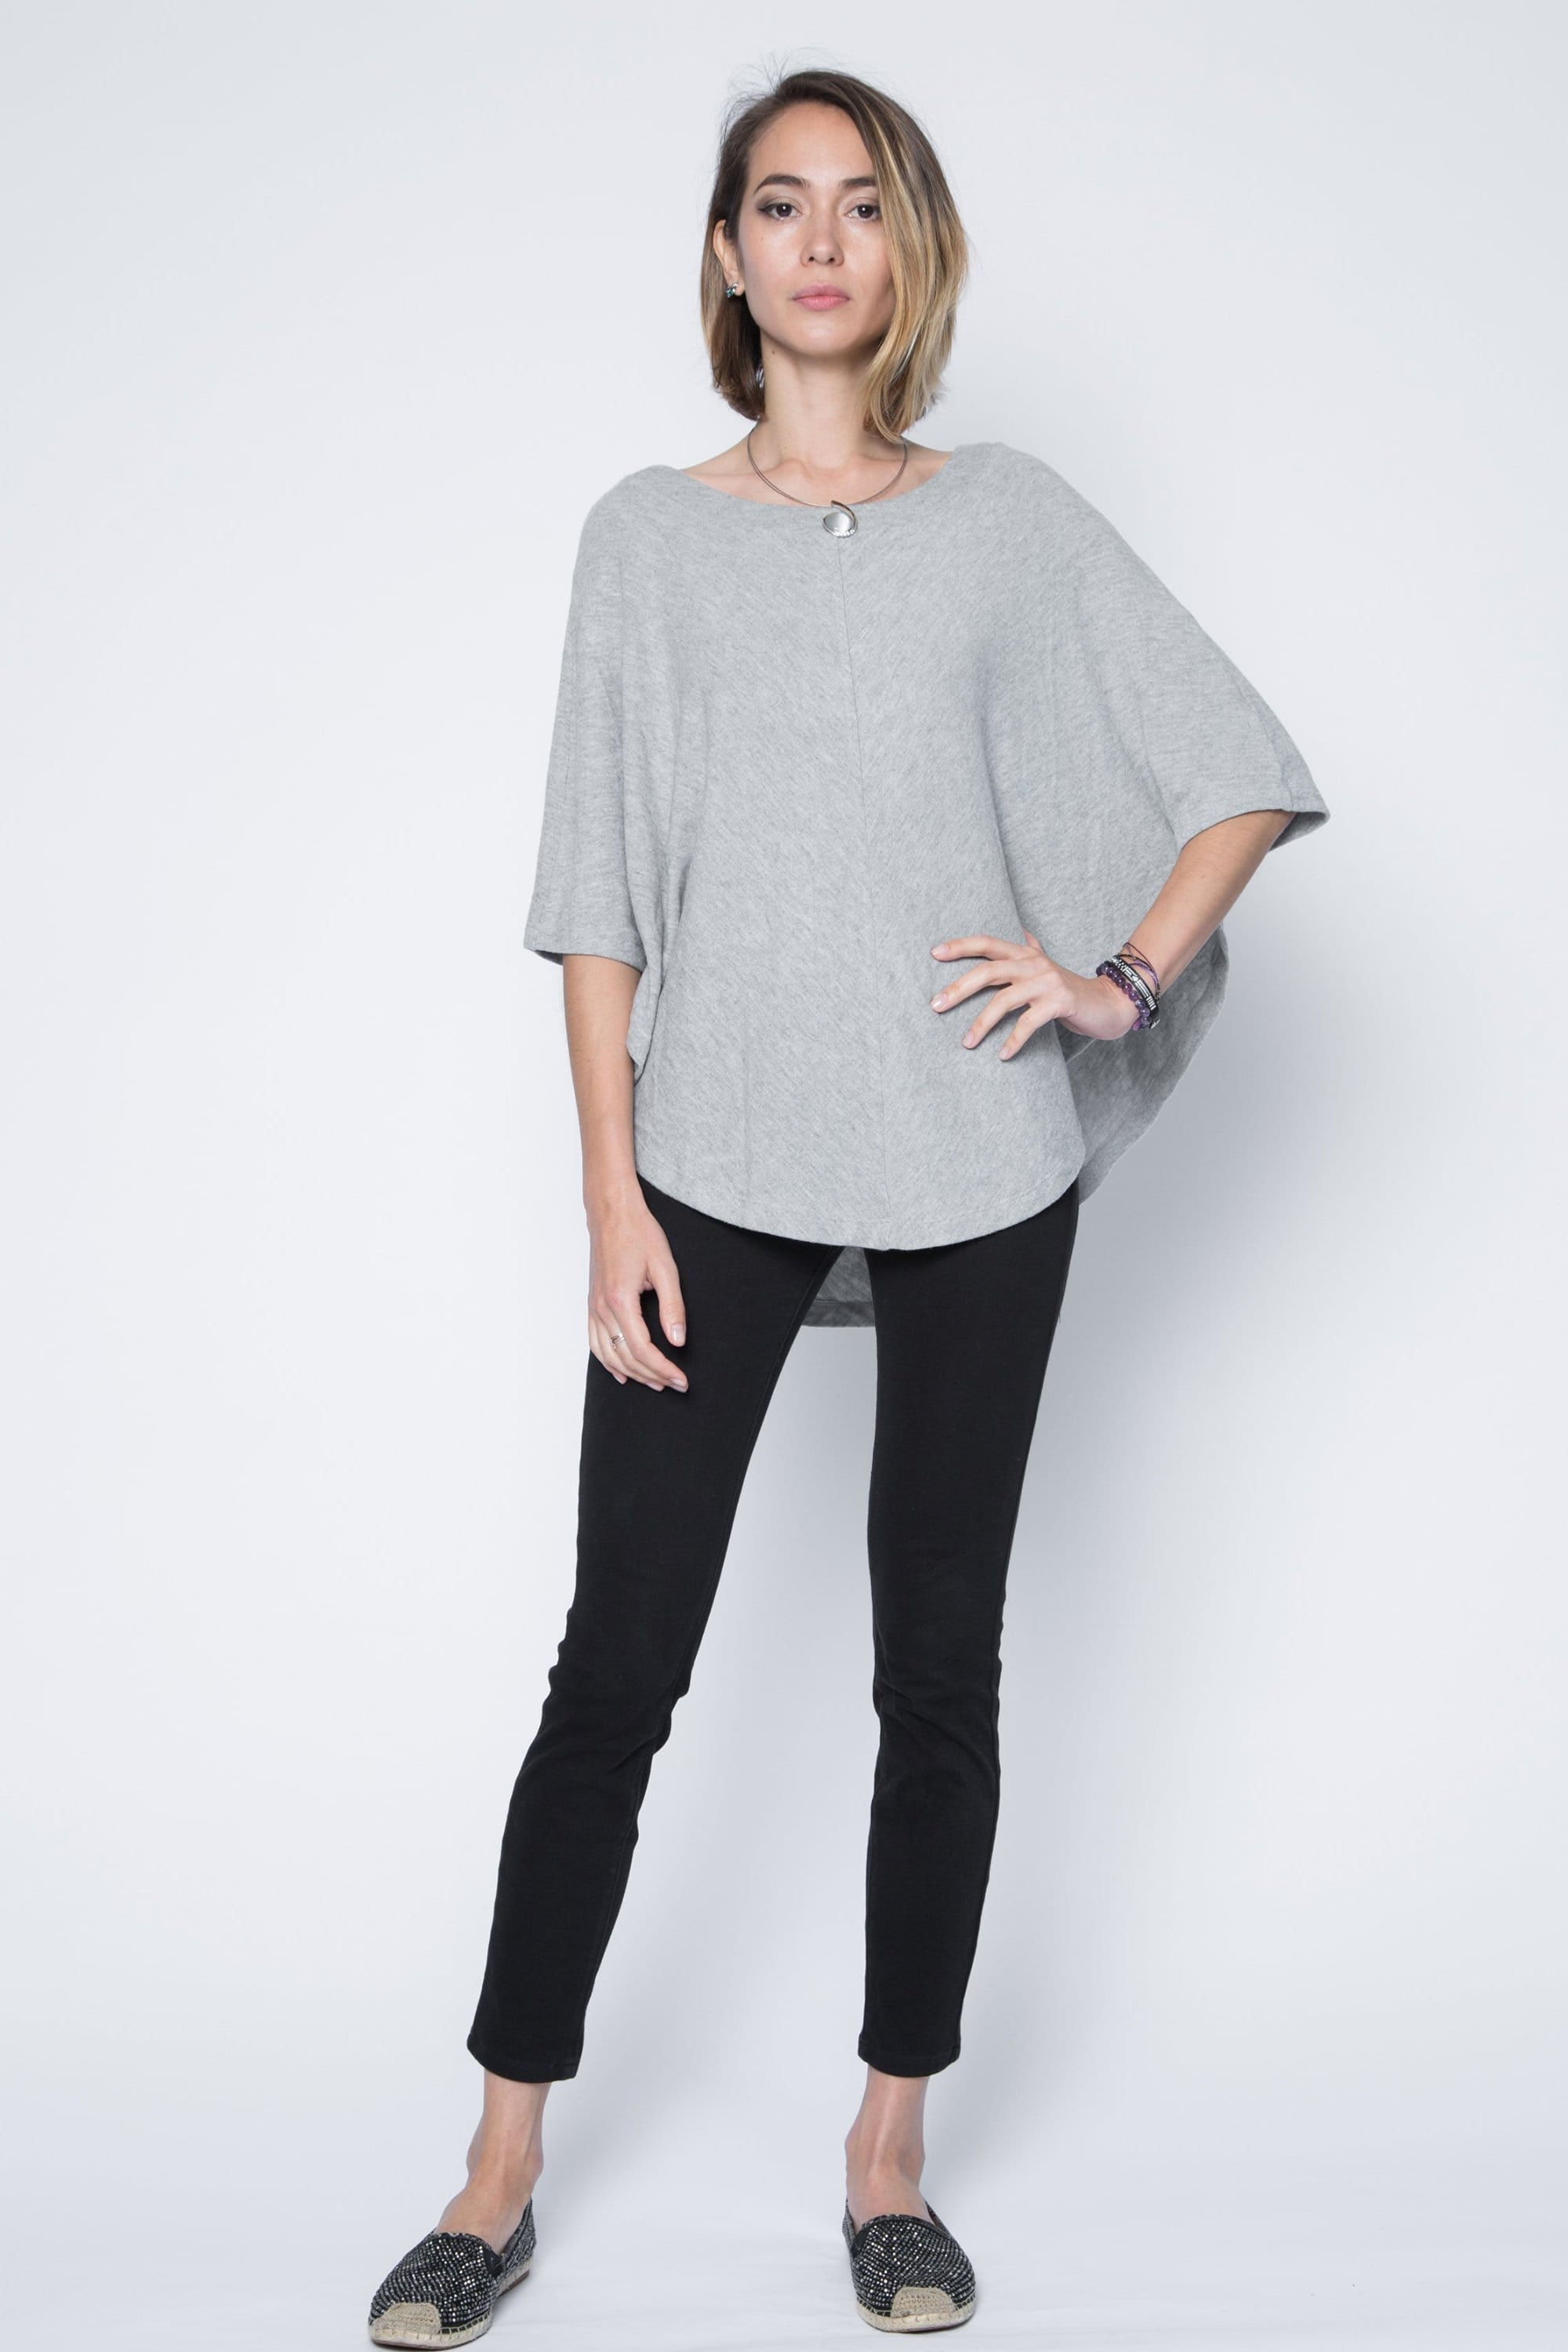 One size kimono sleeve poncho sweater in light grey.